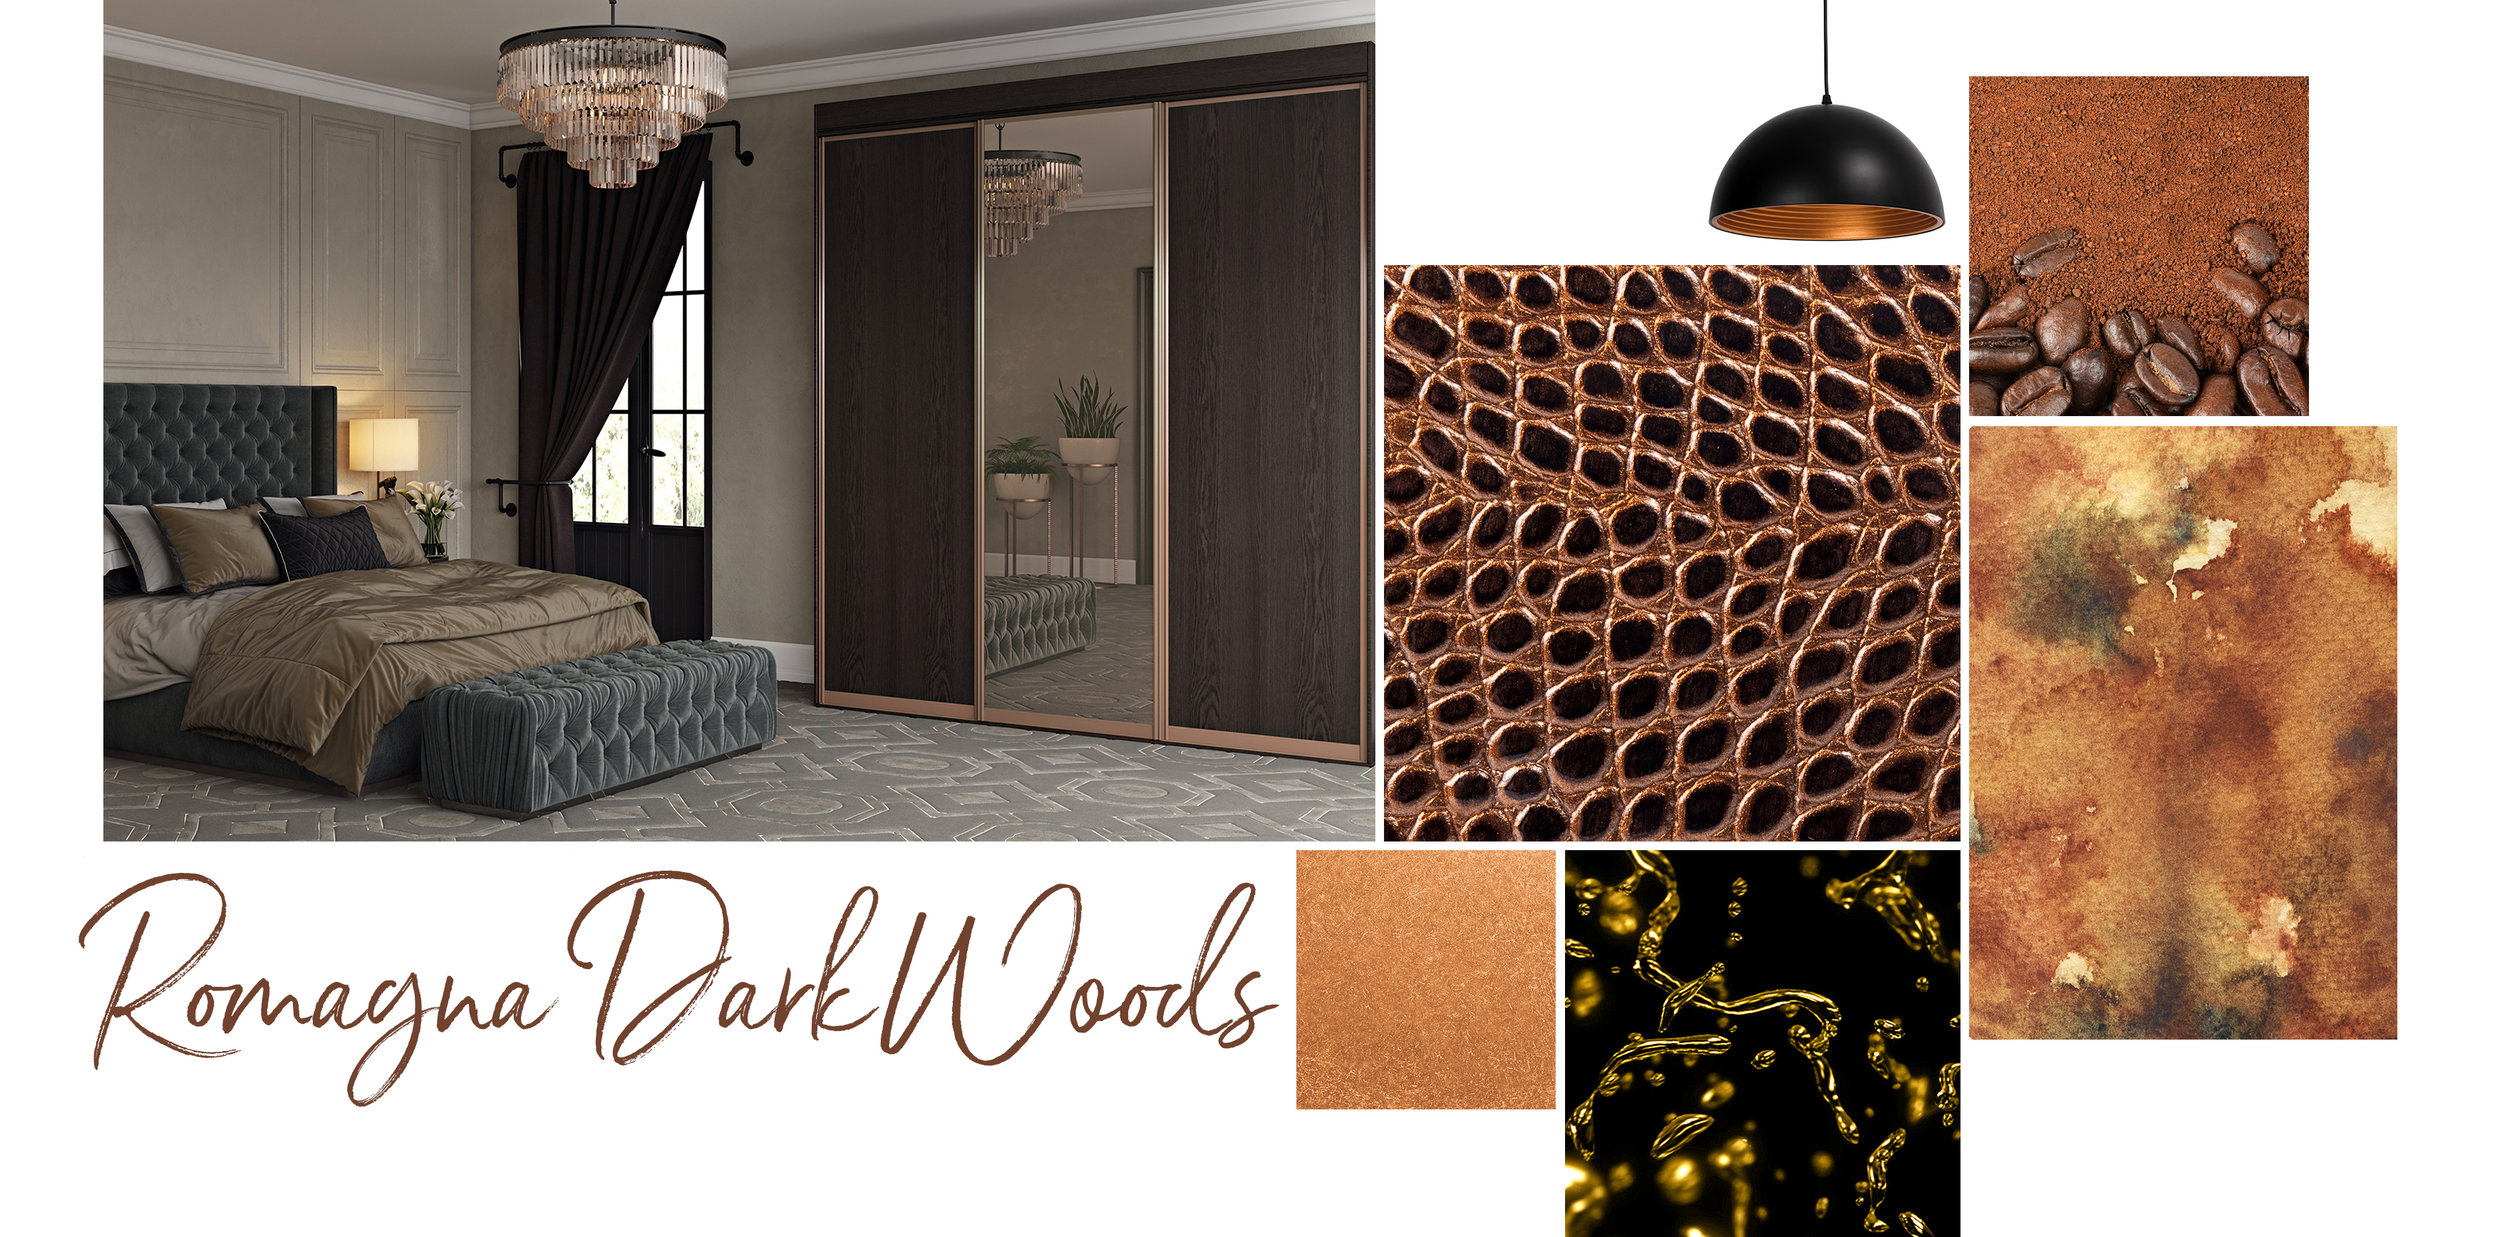 'Romagna Dark Woods' evokes opulence, where luxurious, almost decadent woodgrain finishes combine with subtle metallics and semi precious materials to offer a palette with jewel like qualities.